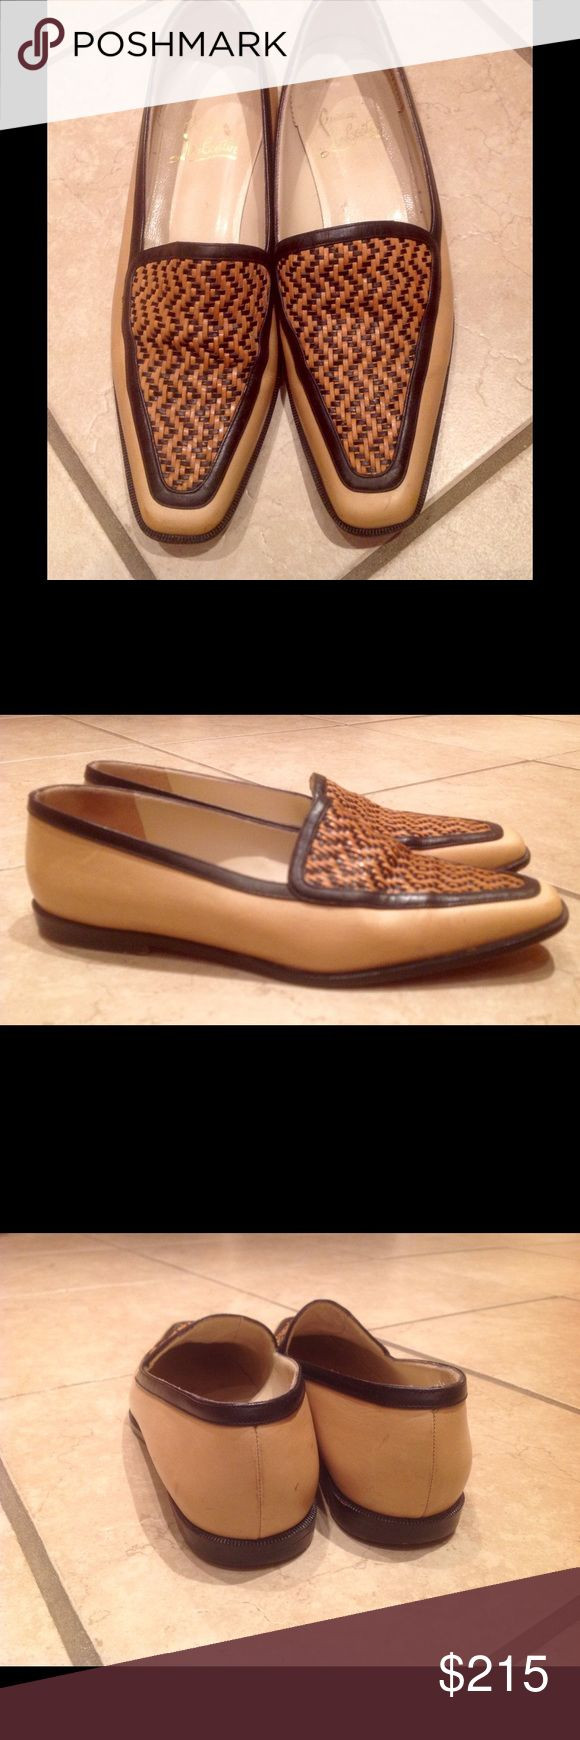 Christian Louboutin beige and black loafers shoes Used original Christian Loboutin shoes are forever! ❤️ them for comfort, quality and beauty. These shoes have some signs of wear but overall in good condition. ❤️ Very little scratches (fixable) mostly on the back.☘Priced to sell!!!! ❤️ 😊💐 Christian Louboutin Shoes Flats & Loafers